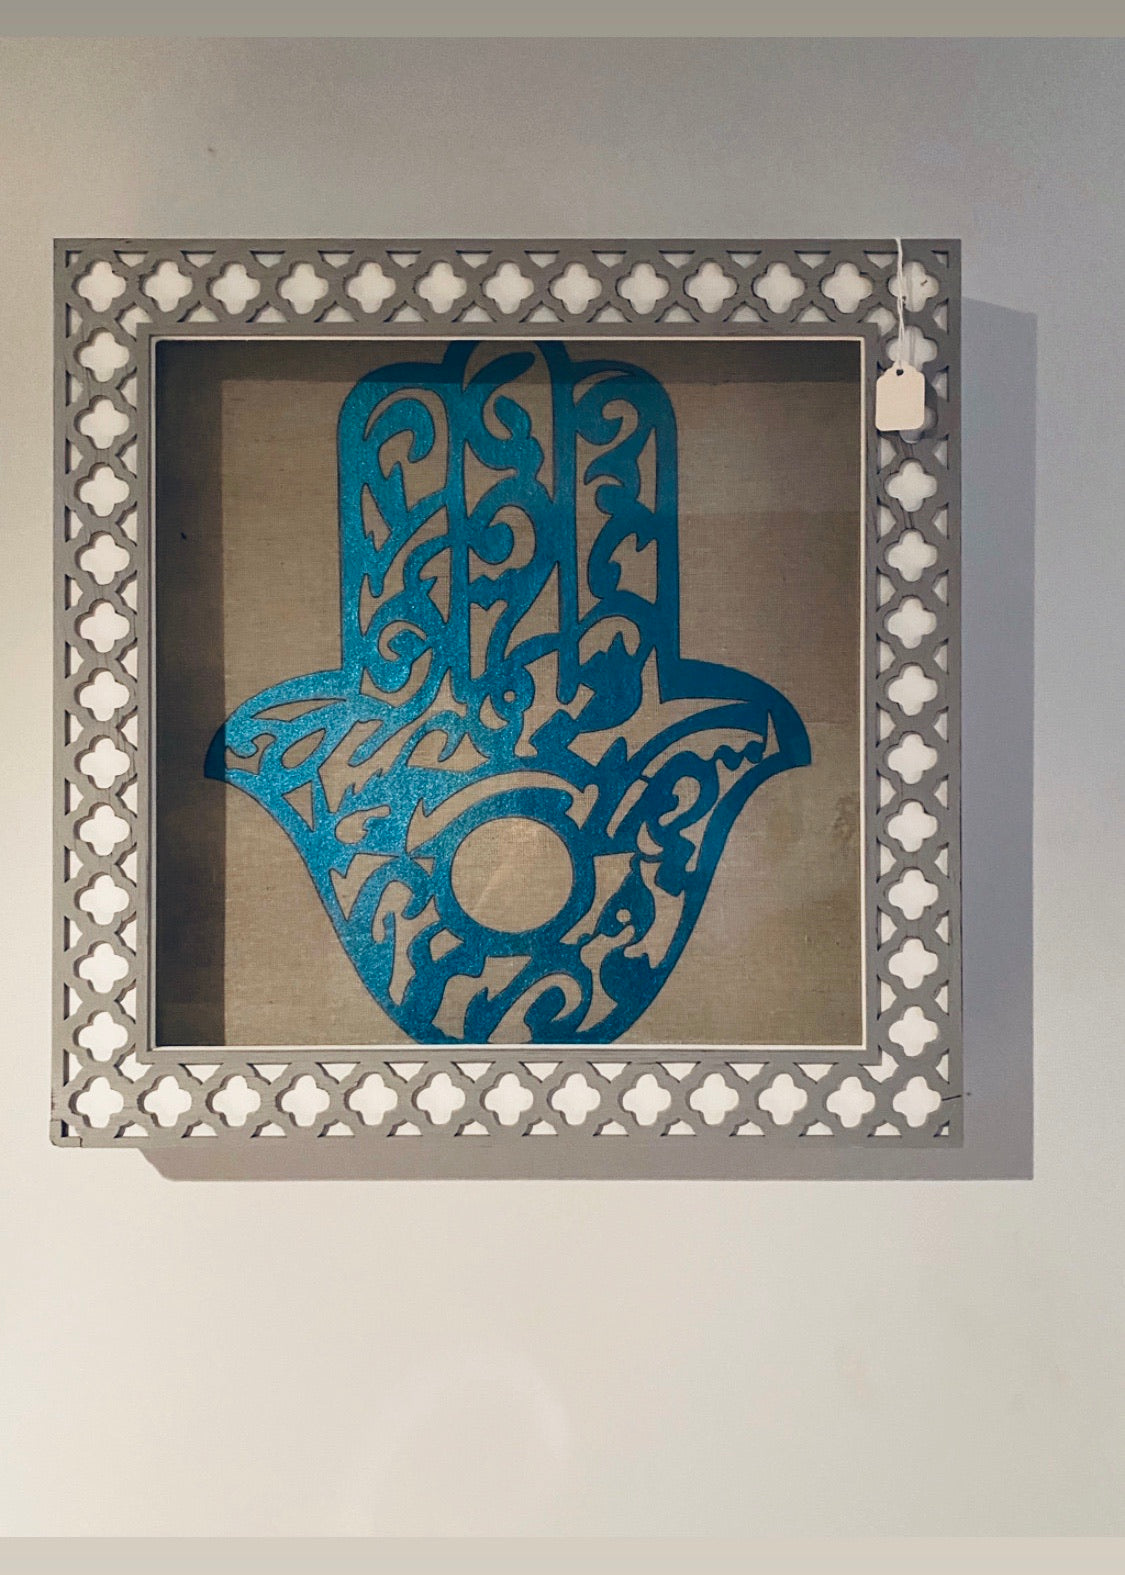 Framed glass wall art